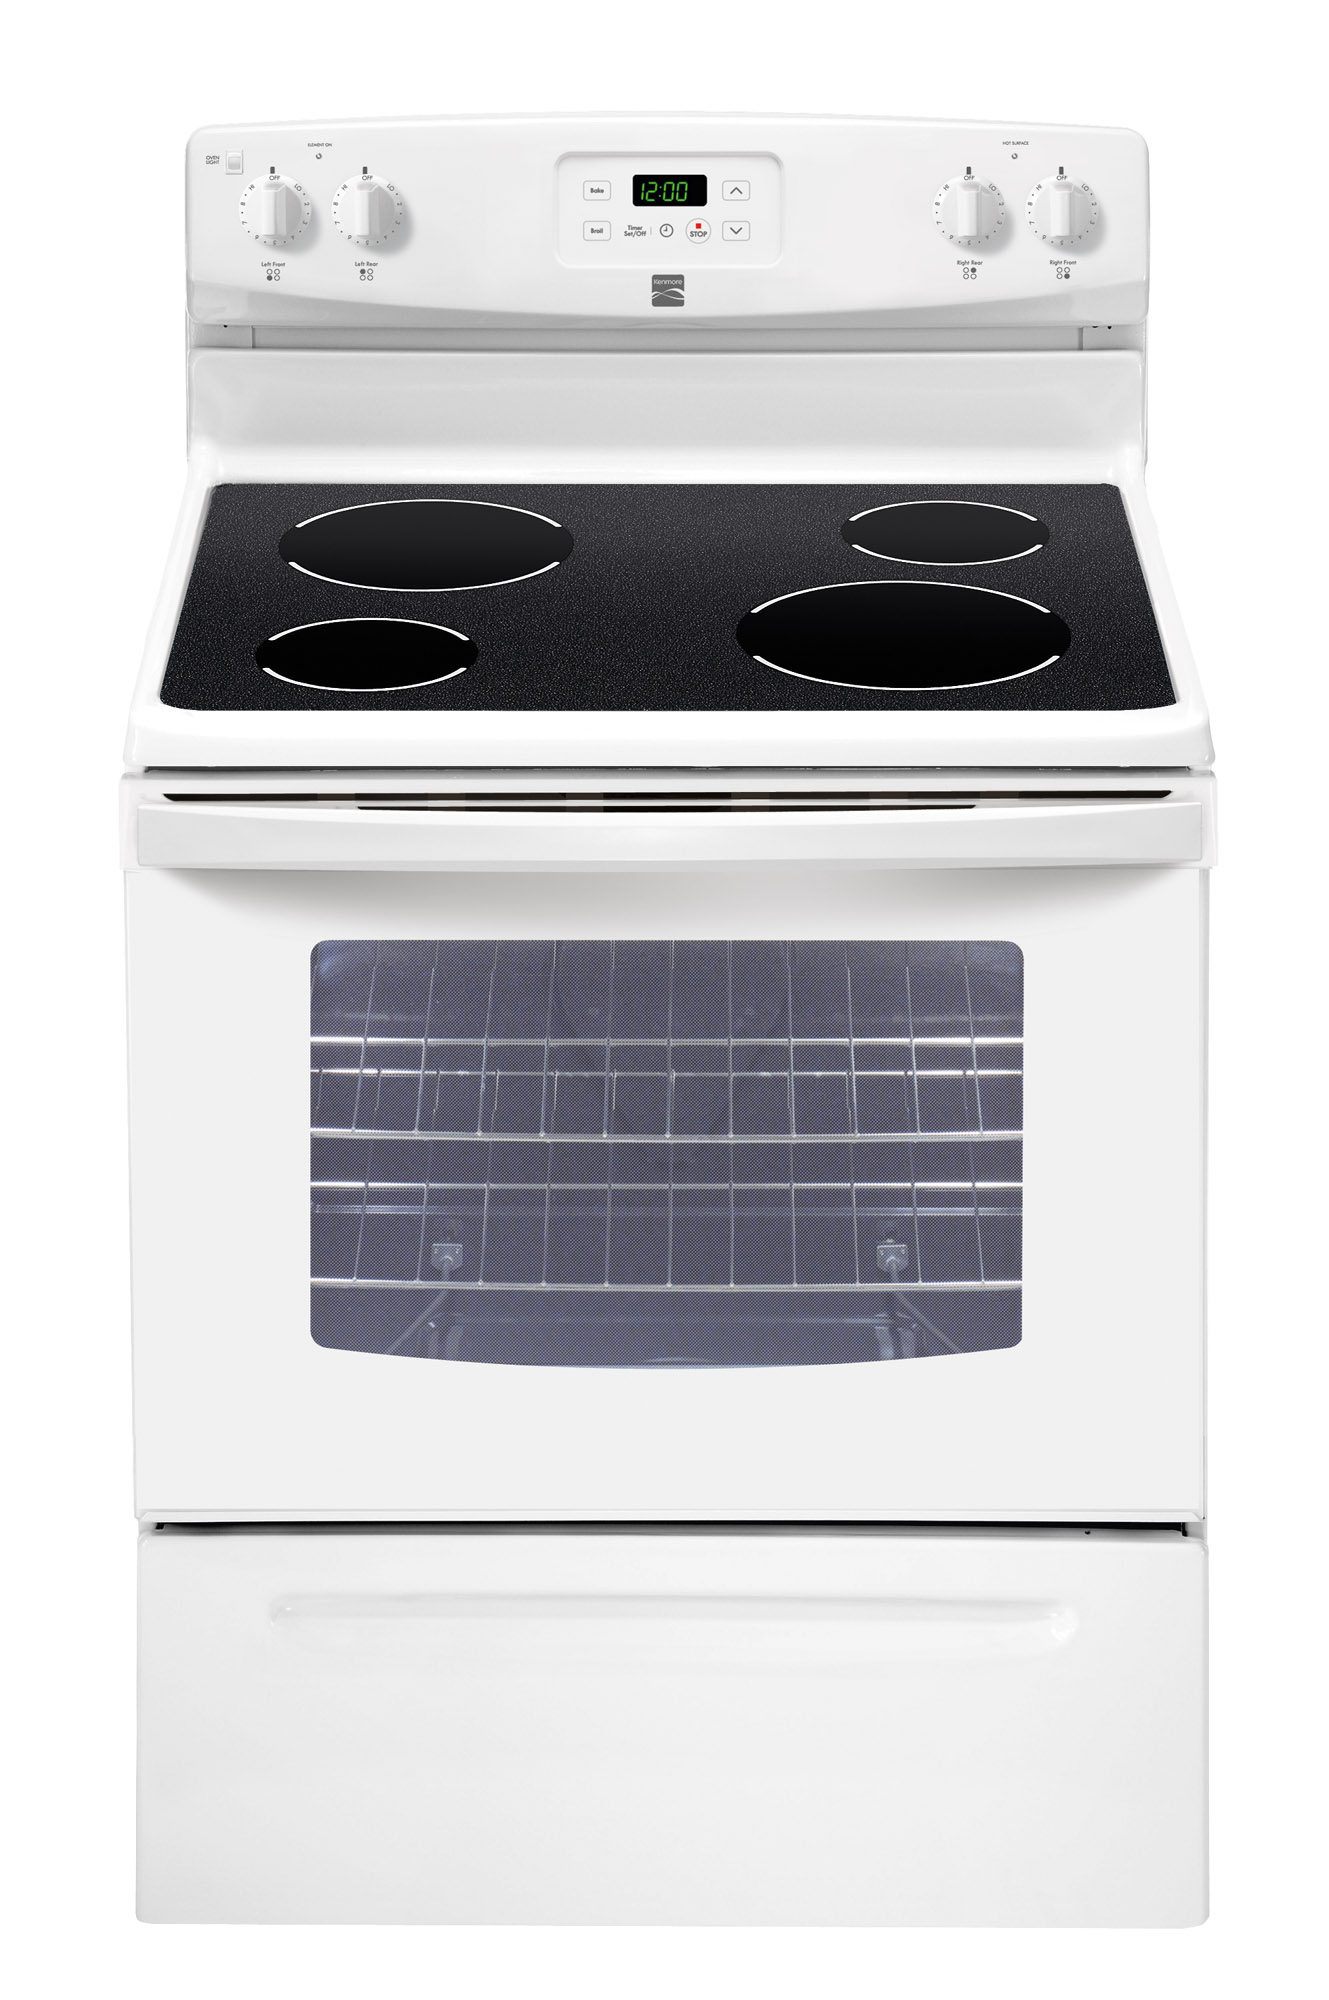 Kenmore Range/Stove/Oven Model 790.91312010 Parts